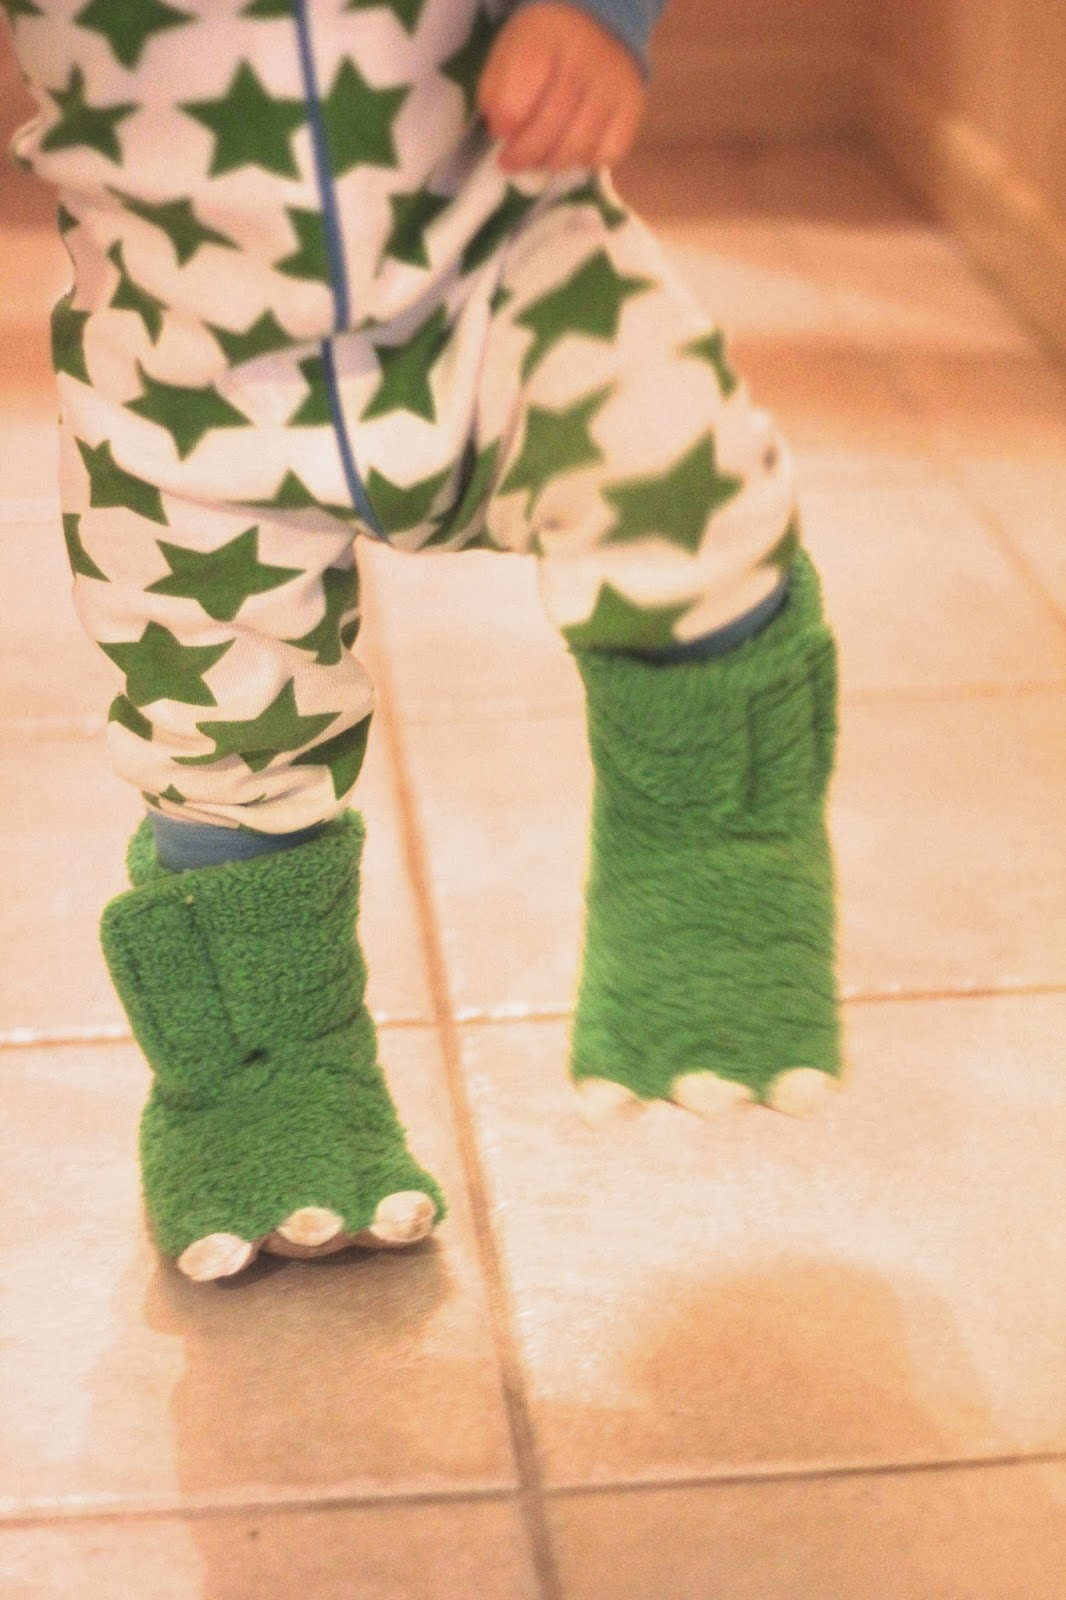 Carters Baby Monster Bedroom Shoes: Tuck Turns One